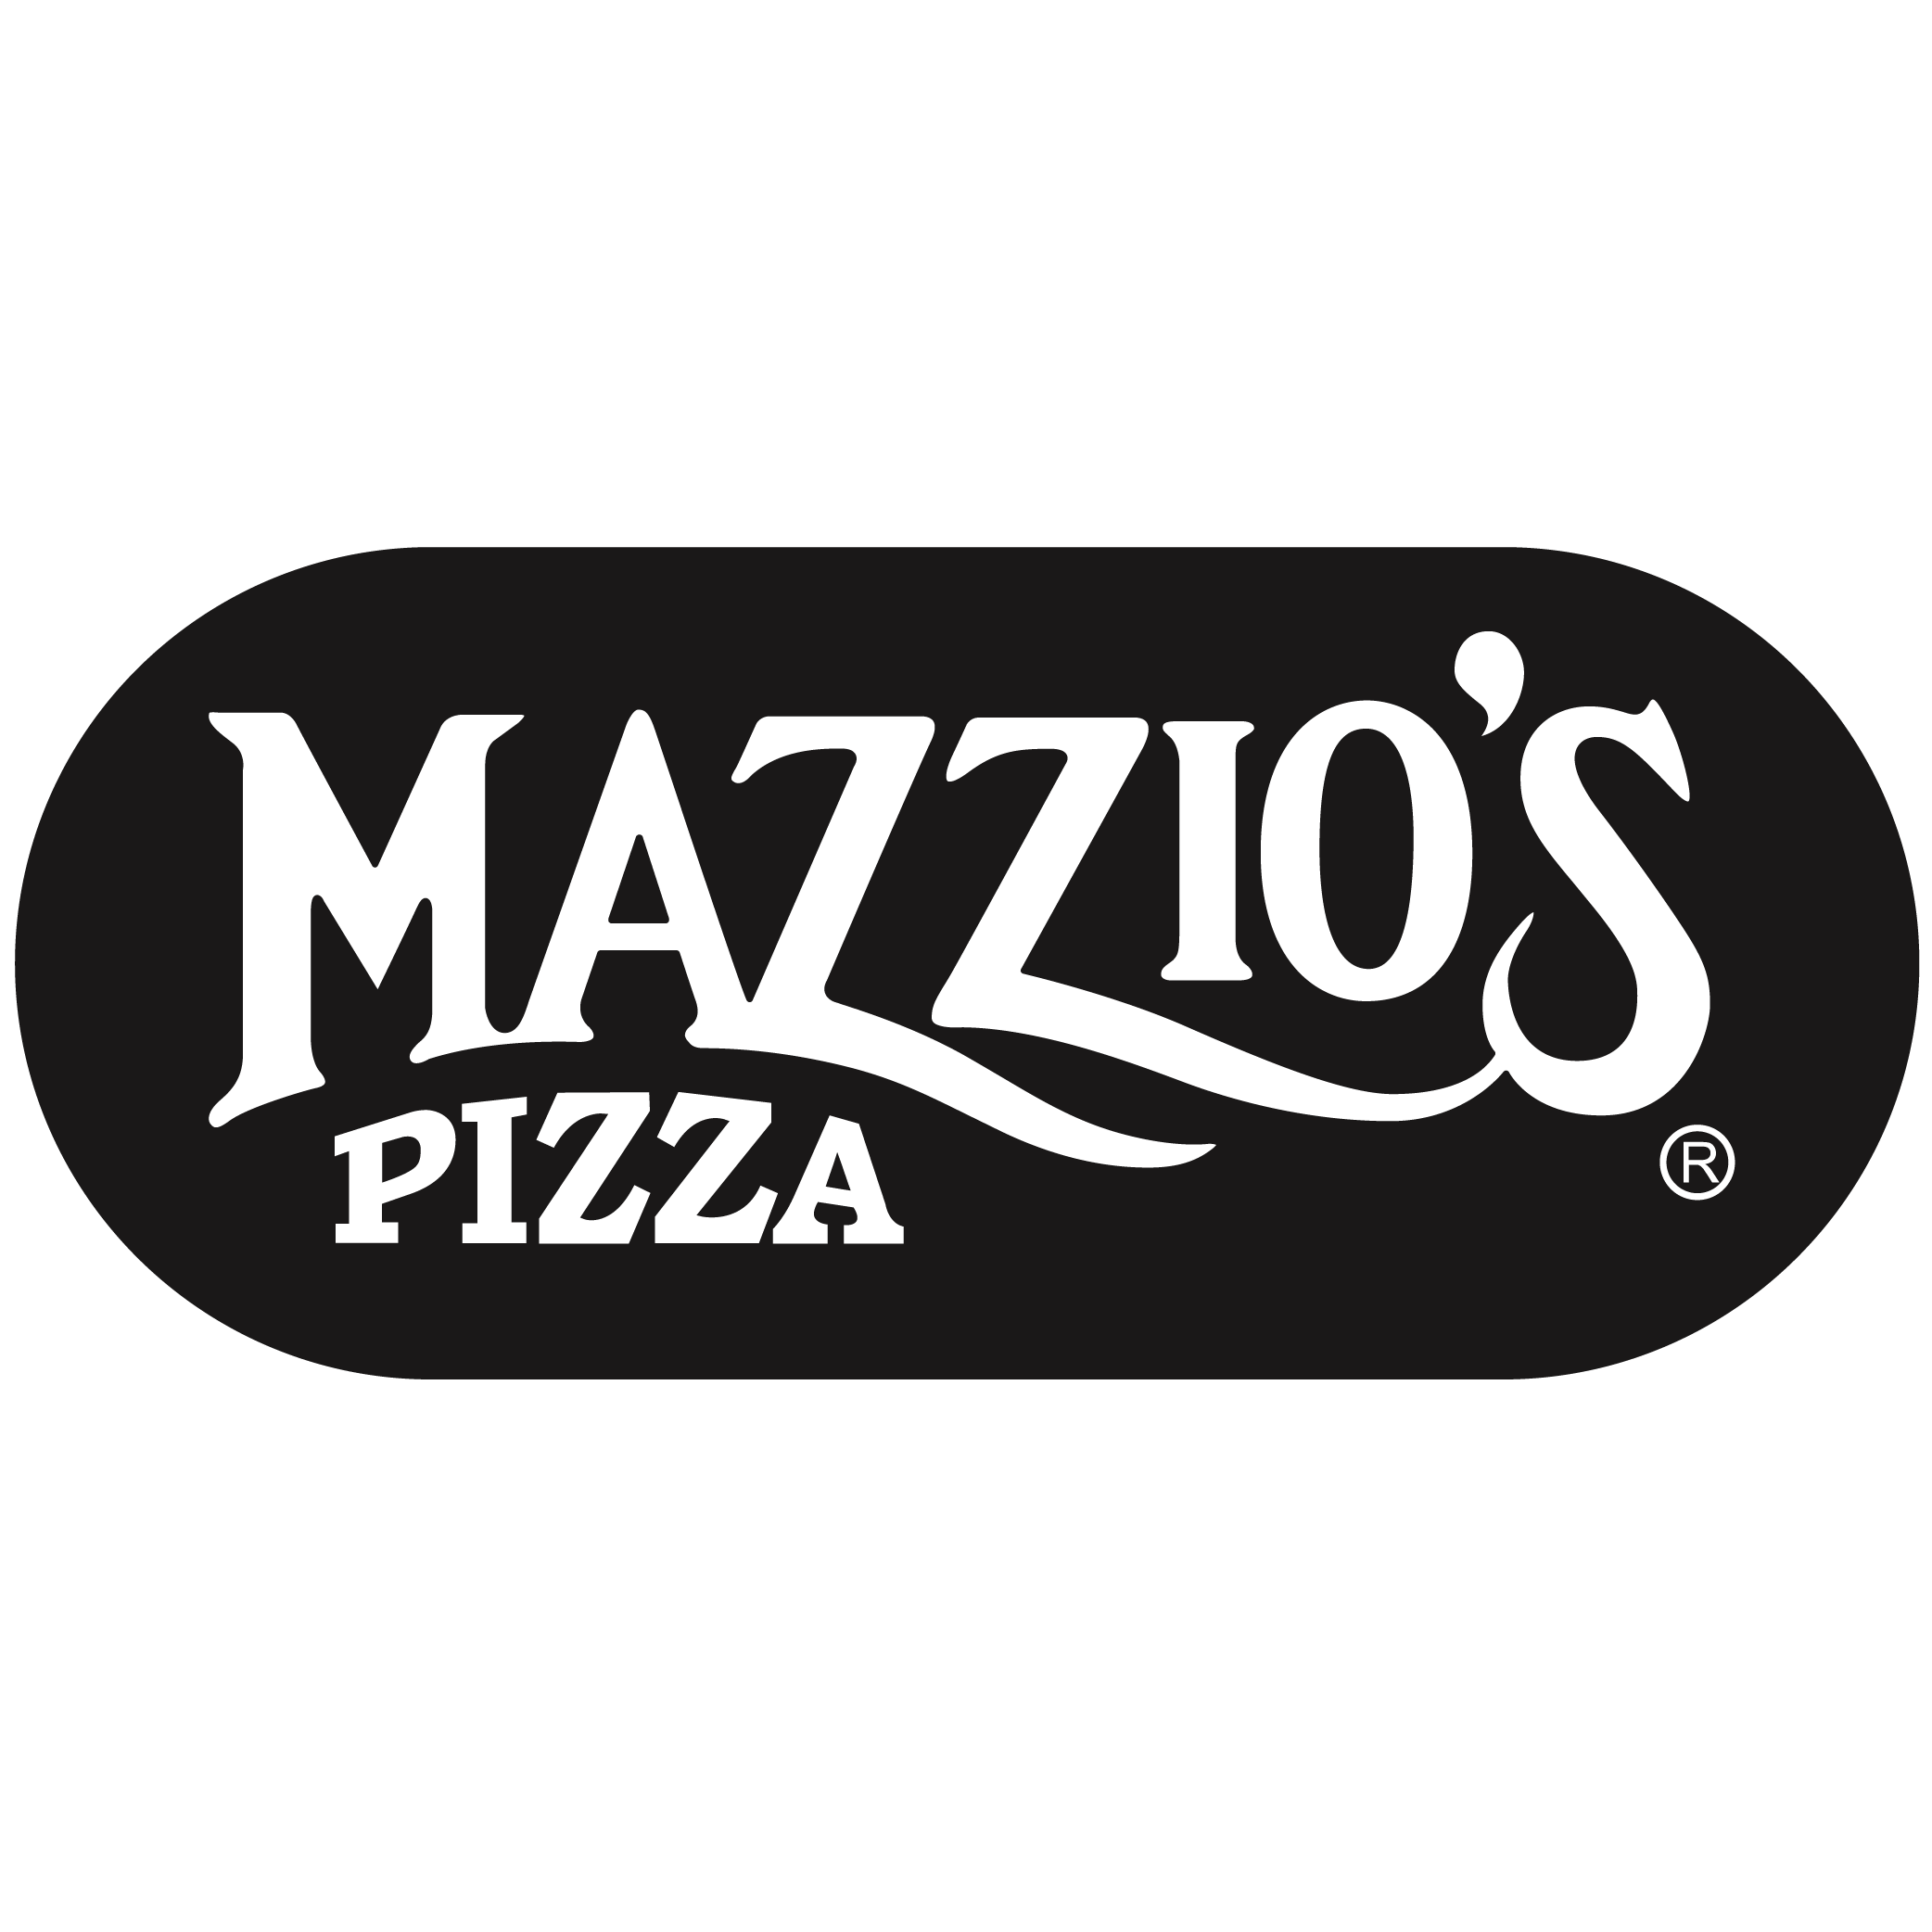 mazzios.png